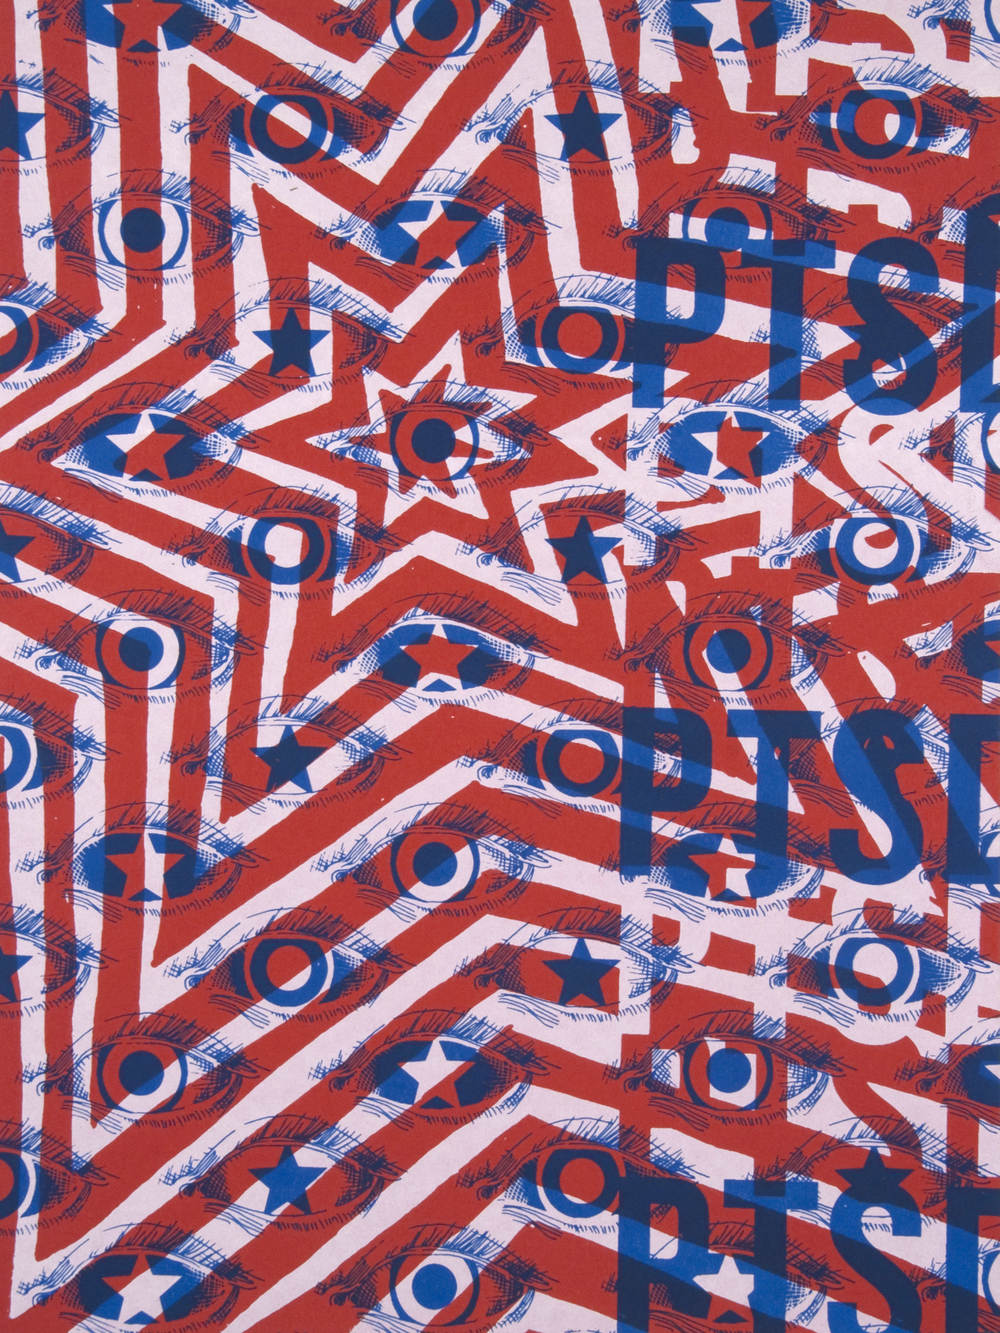 08 PTSD Stars and Stripes by Josh MacPhee.jpg